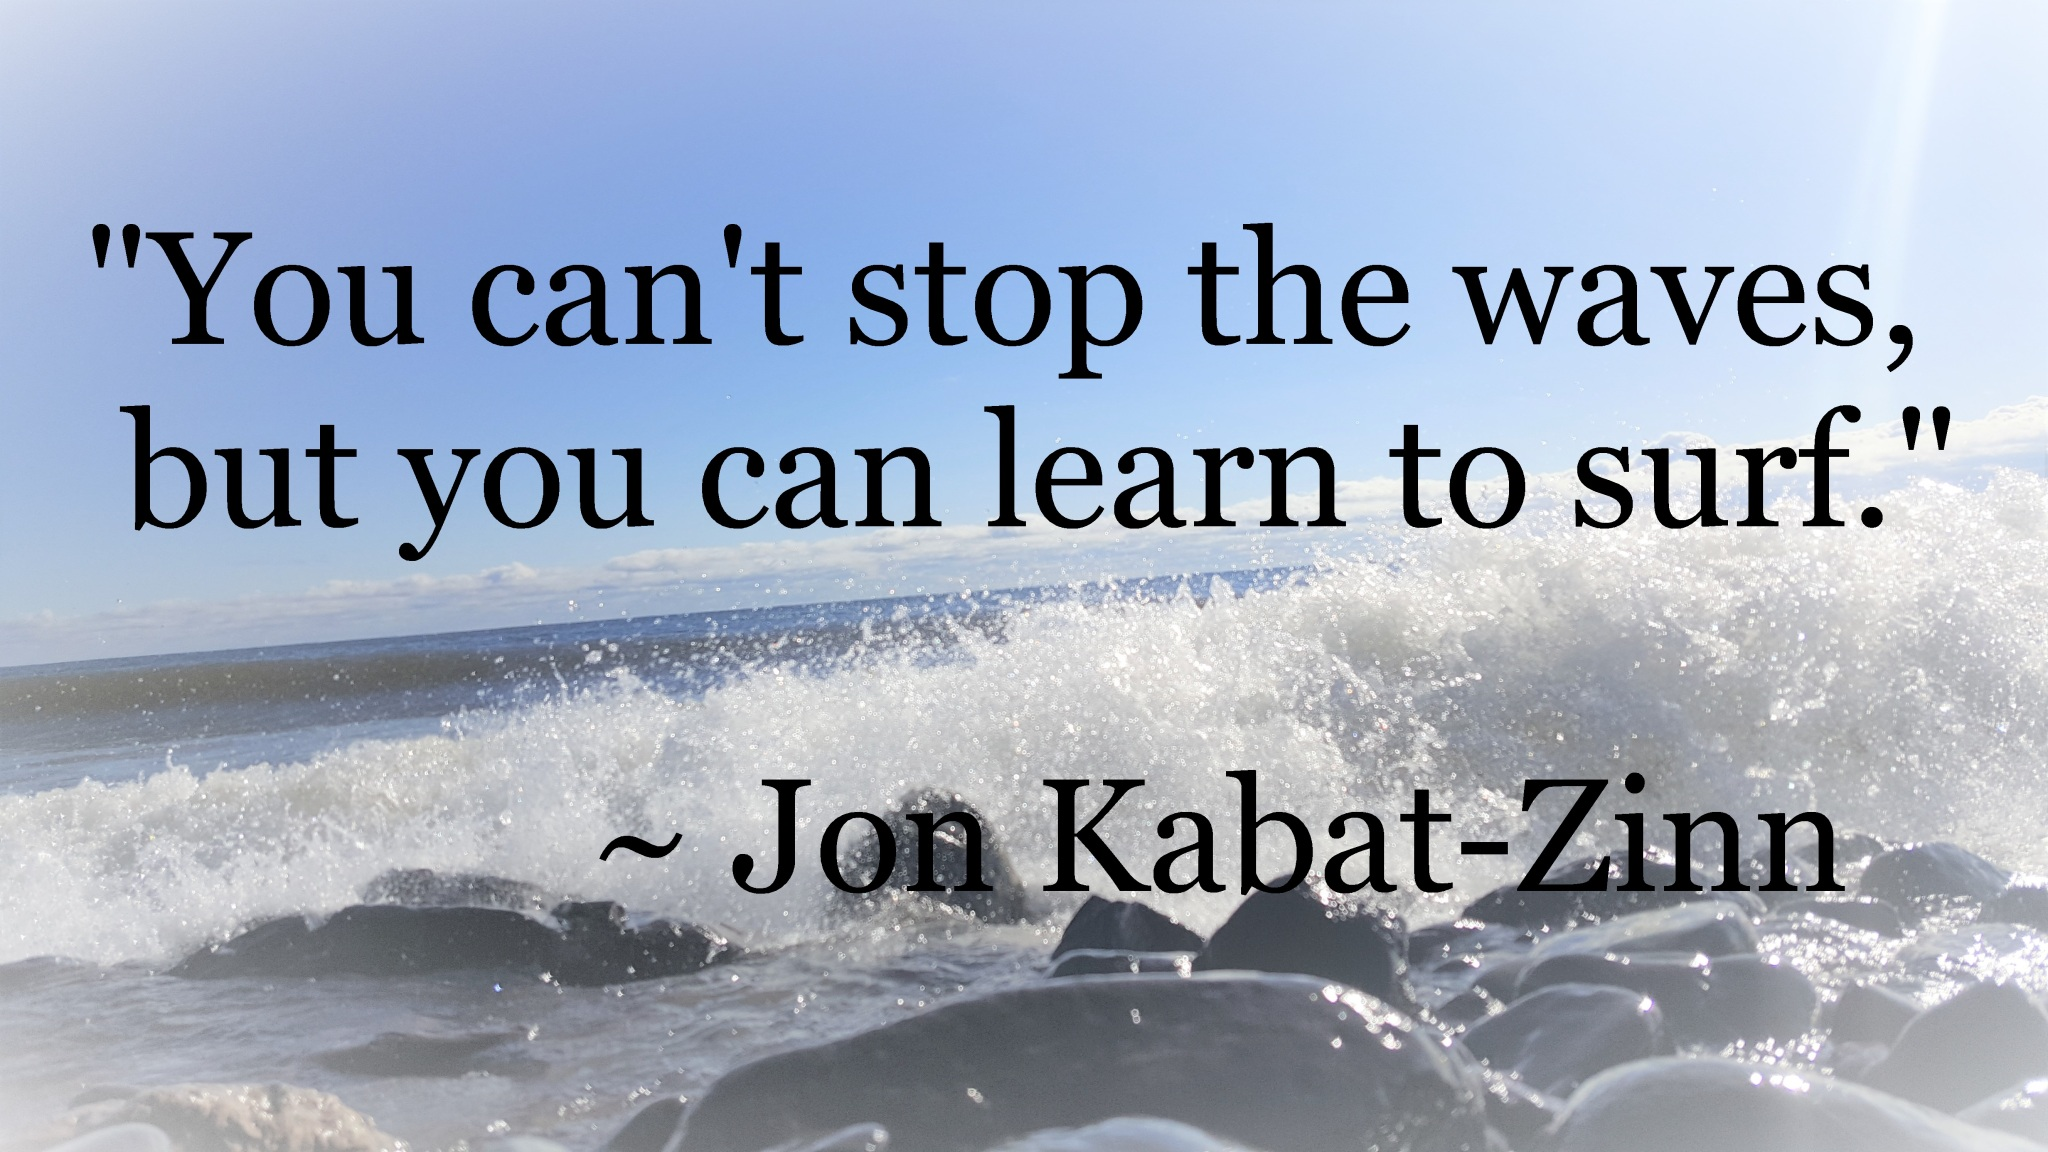 Jon Kabat-Zinn - surf the waves